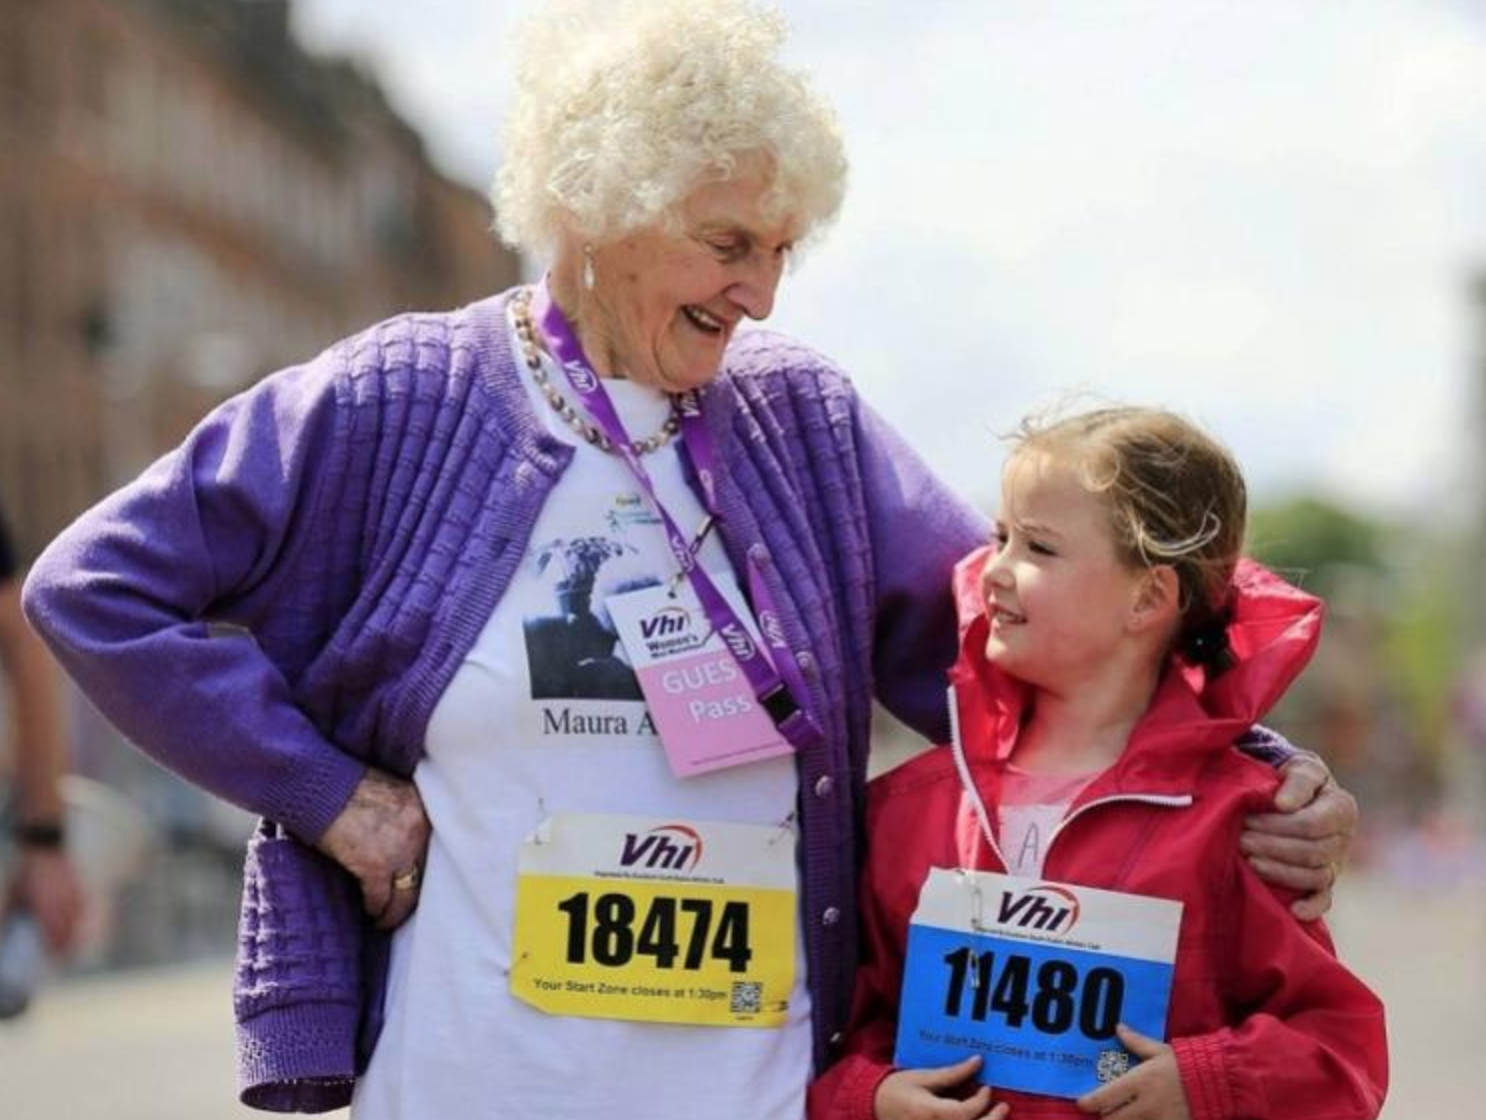 94-years-old Maureen has completed her 25th Marathon